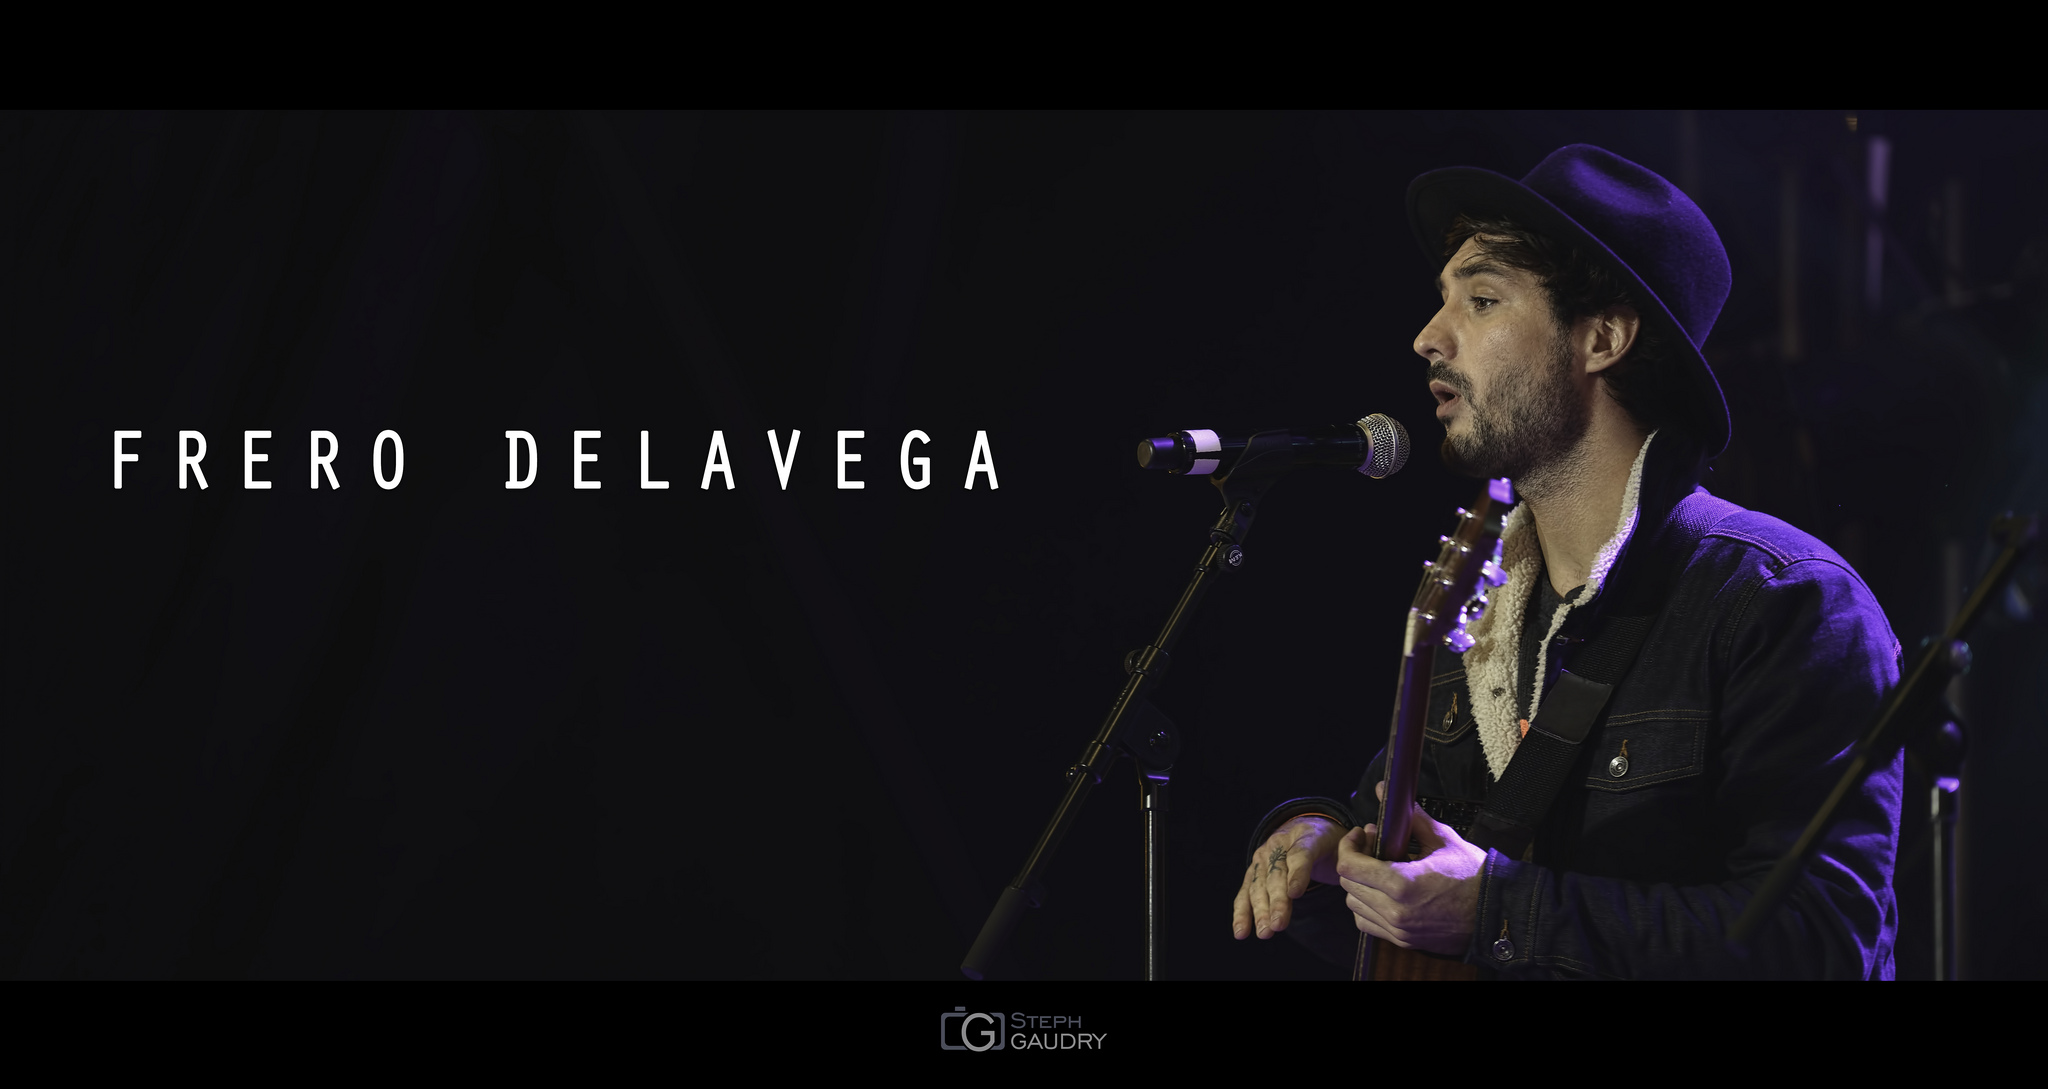 Frero Delavega [Click to start slideshow]